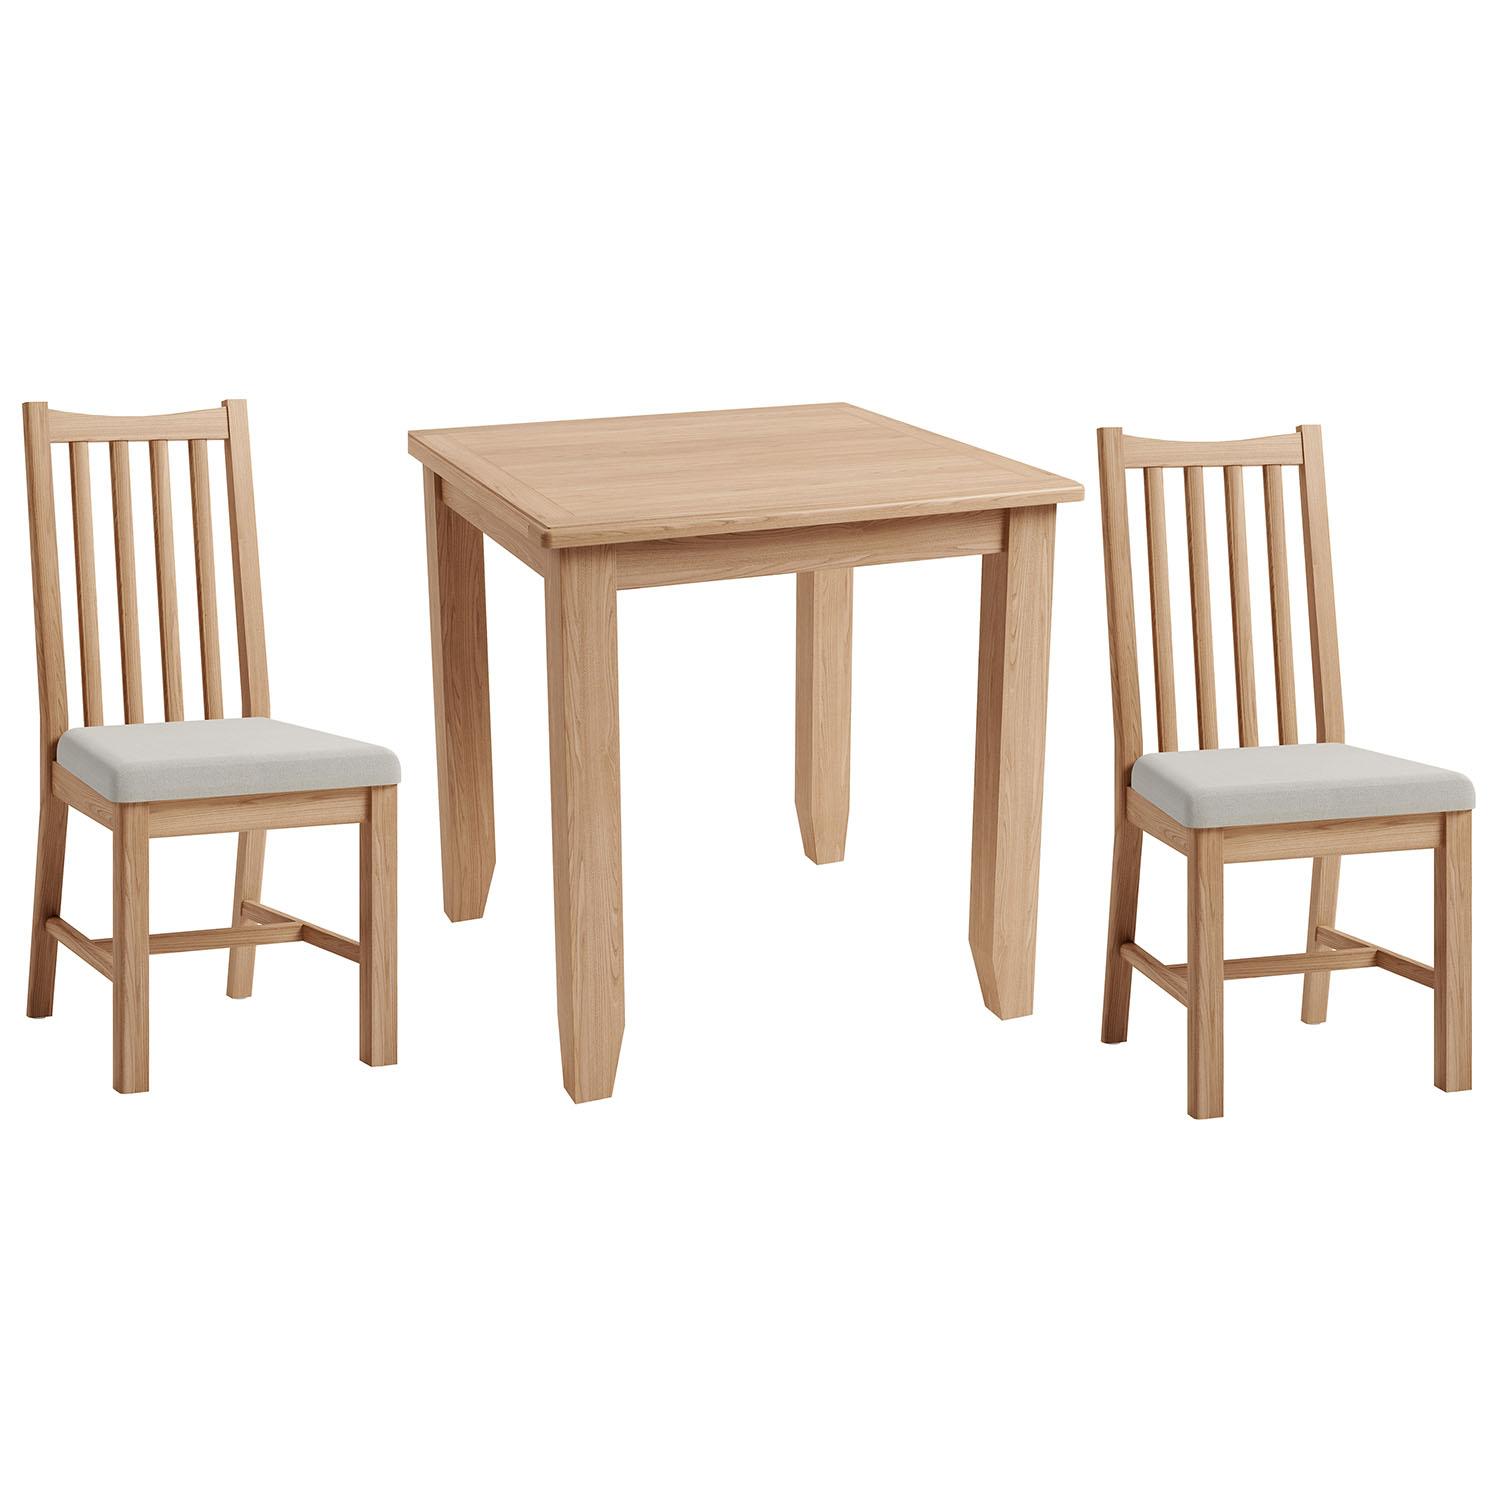 Hurstley Fixed Top Table and x2 Chairs Dining Set